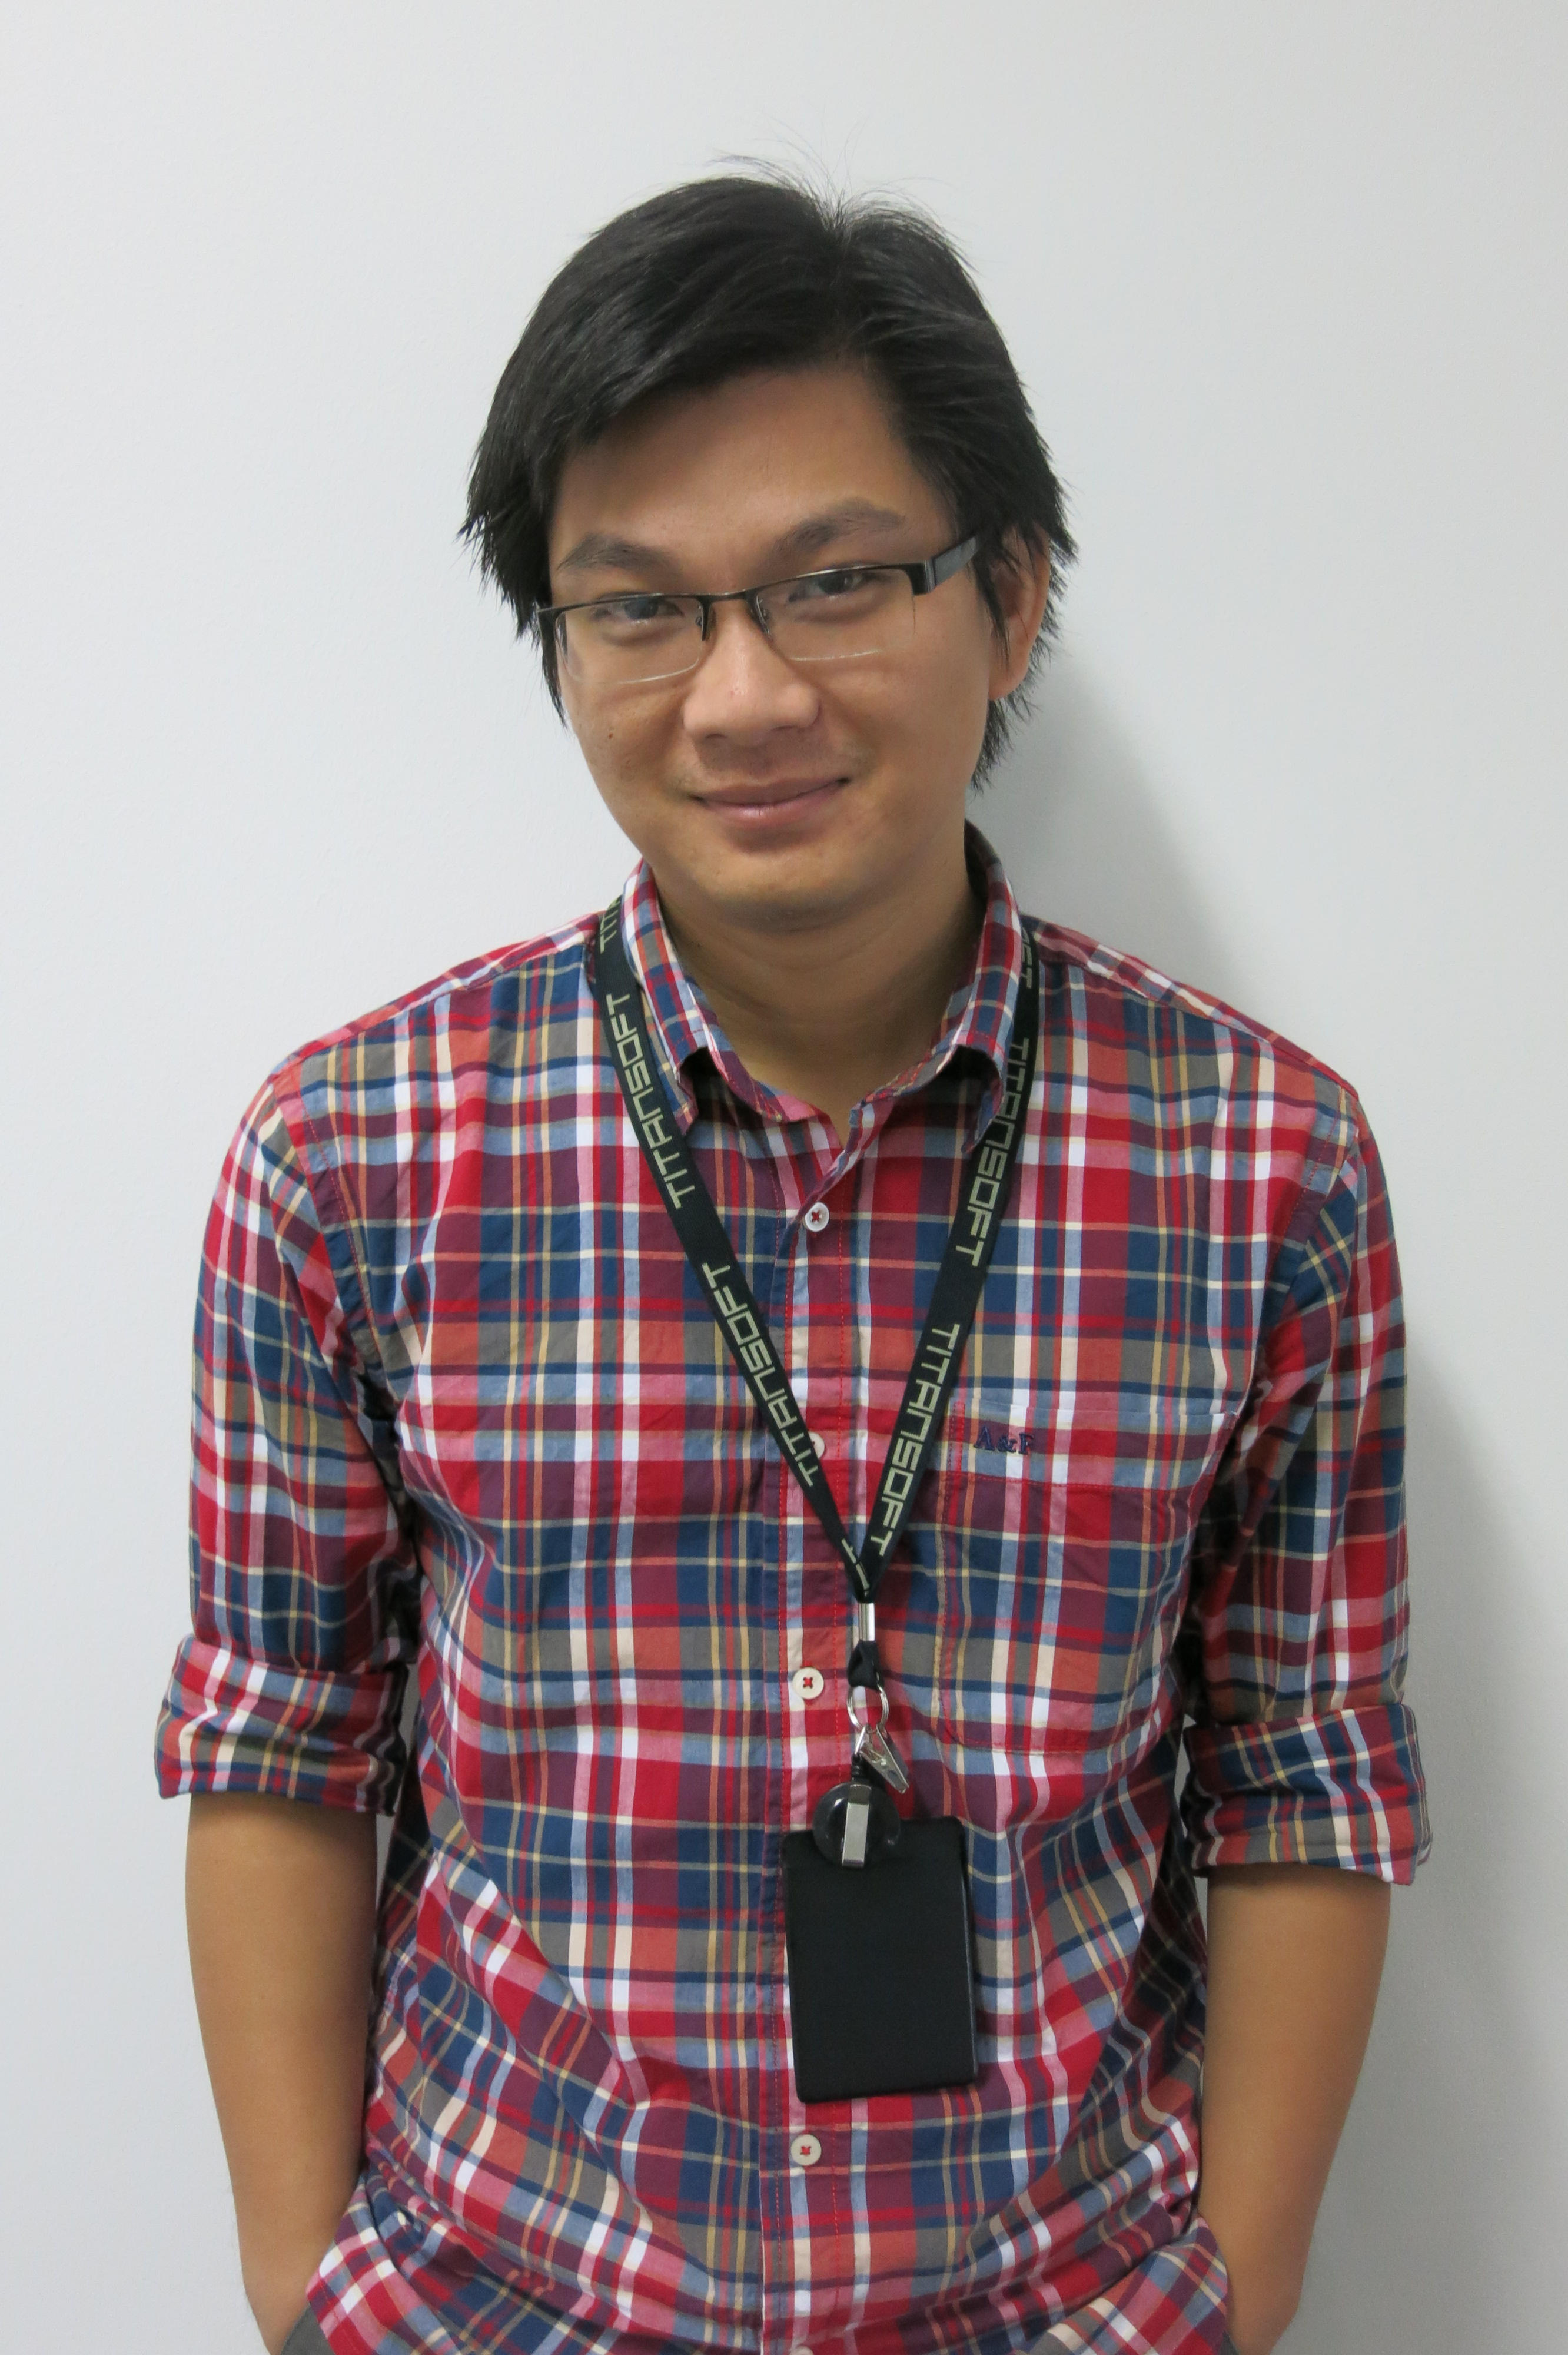 Tuan, one of our Senior Product Developers